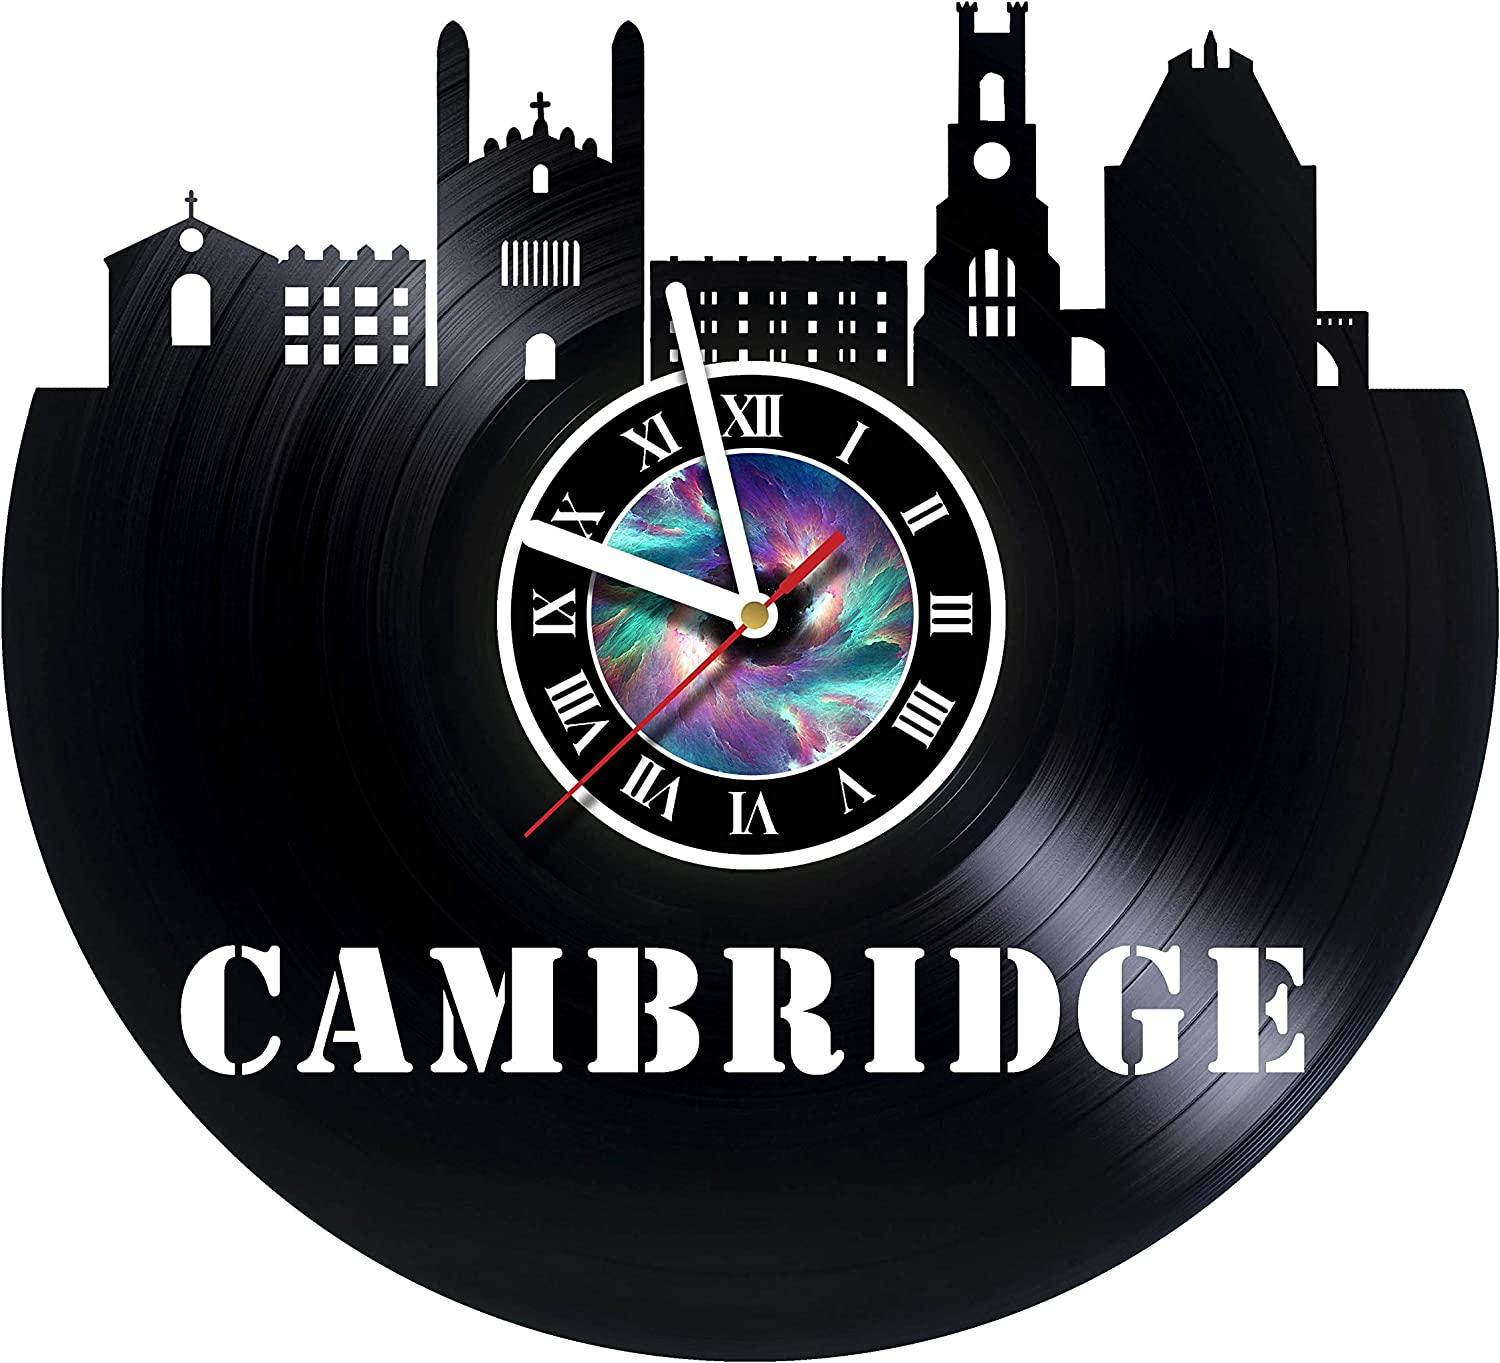 Amazon Com Steparthouse Cambridje Handmade Vinyl Wall Clock Get Unique Gifts Presents For Birthday Christmas Ideas For Boys Girls Men Women Adults Him And Her Unique Design Home Kitchen